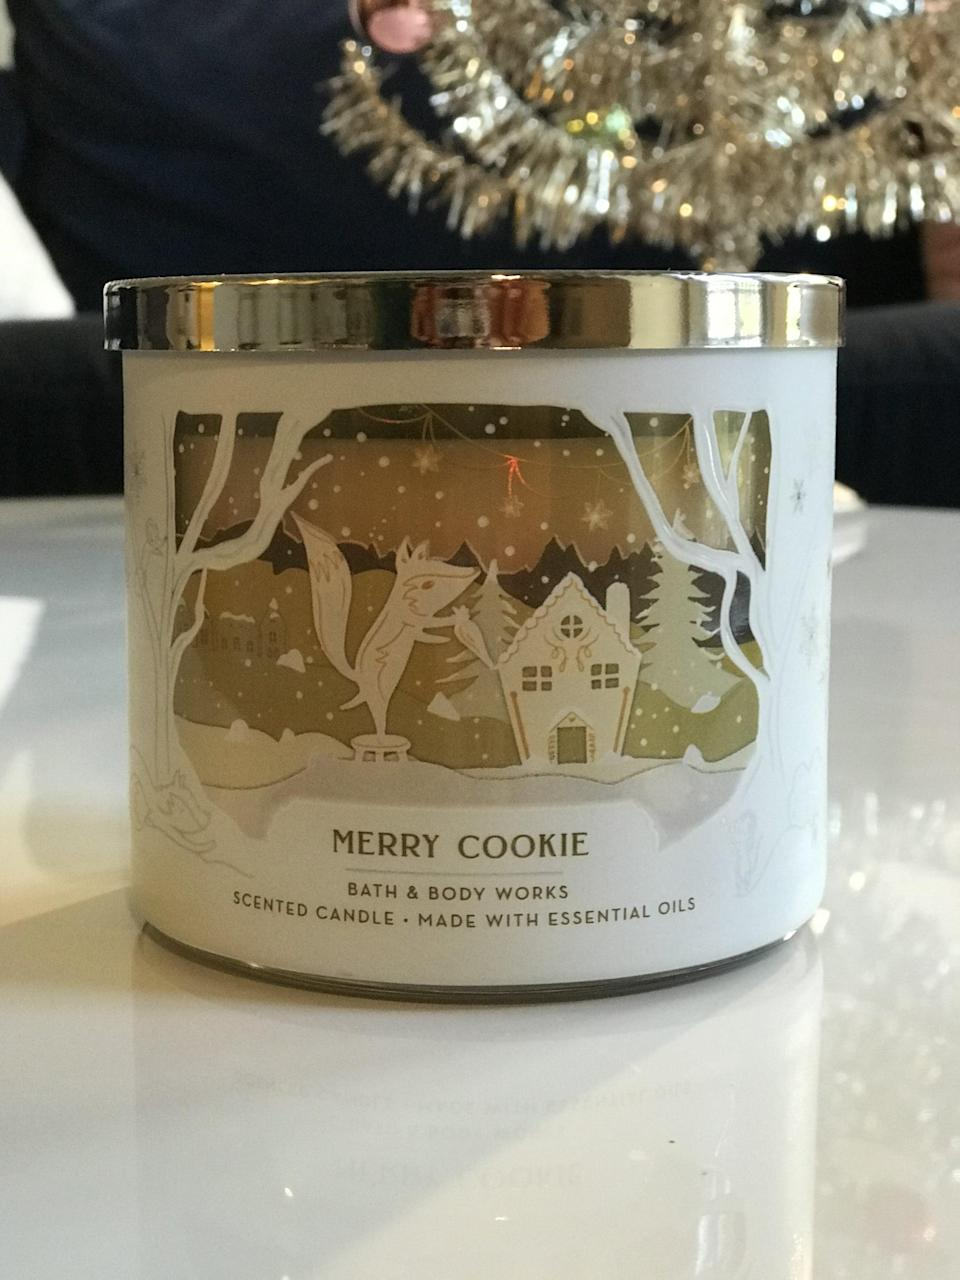 <p><span>Merry Cookie 3-Wick Candle</span> ($15, originally $25)</p> <p><strong>What It Smells Like:</strong> A freshly baked vanilla sugar cookie.</p>